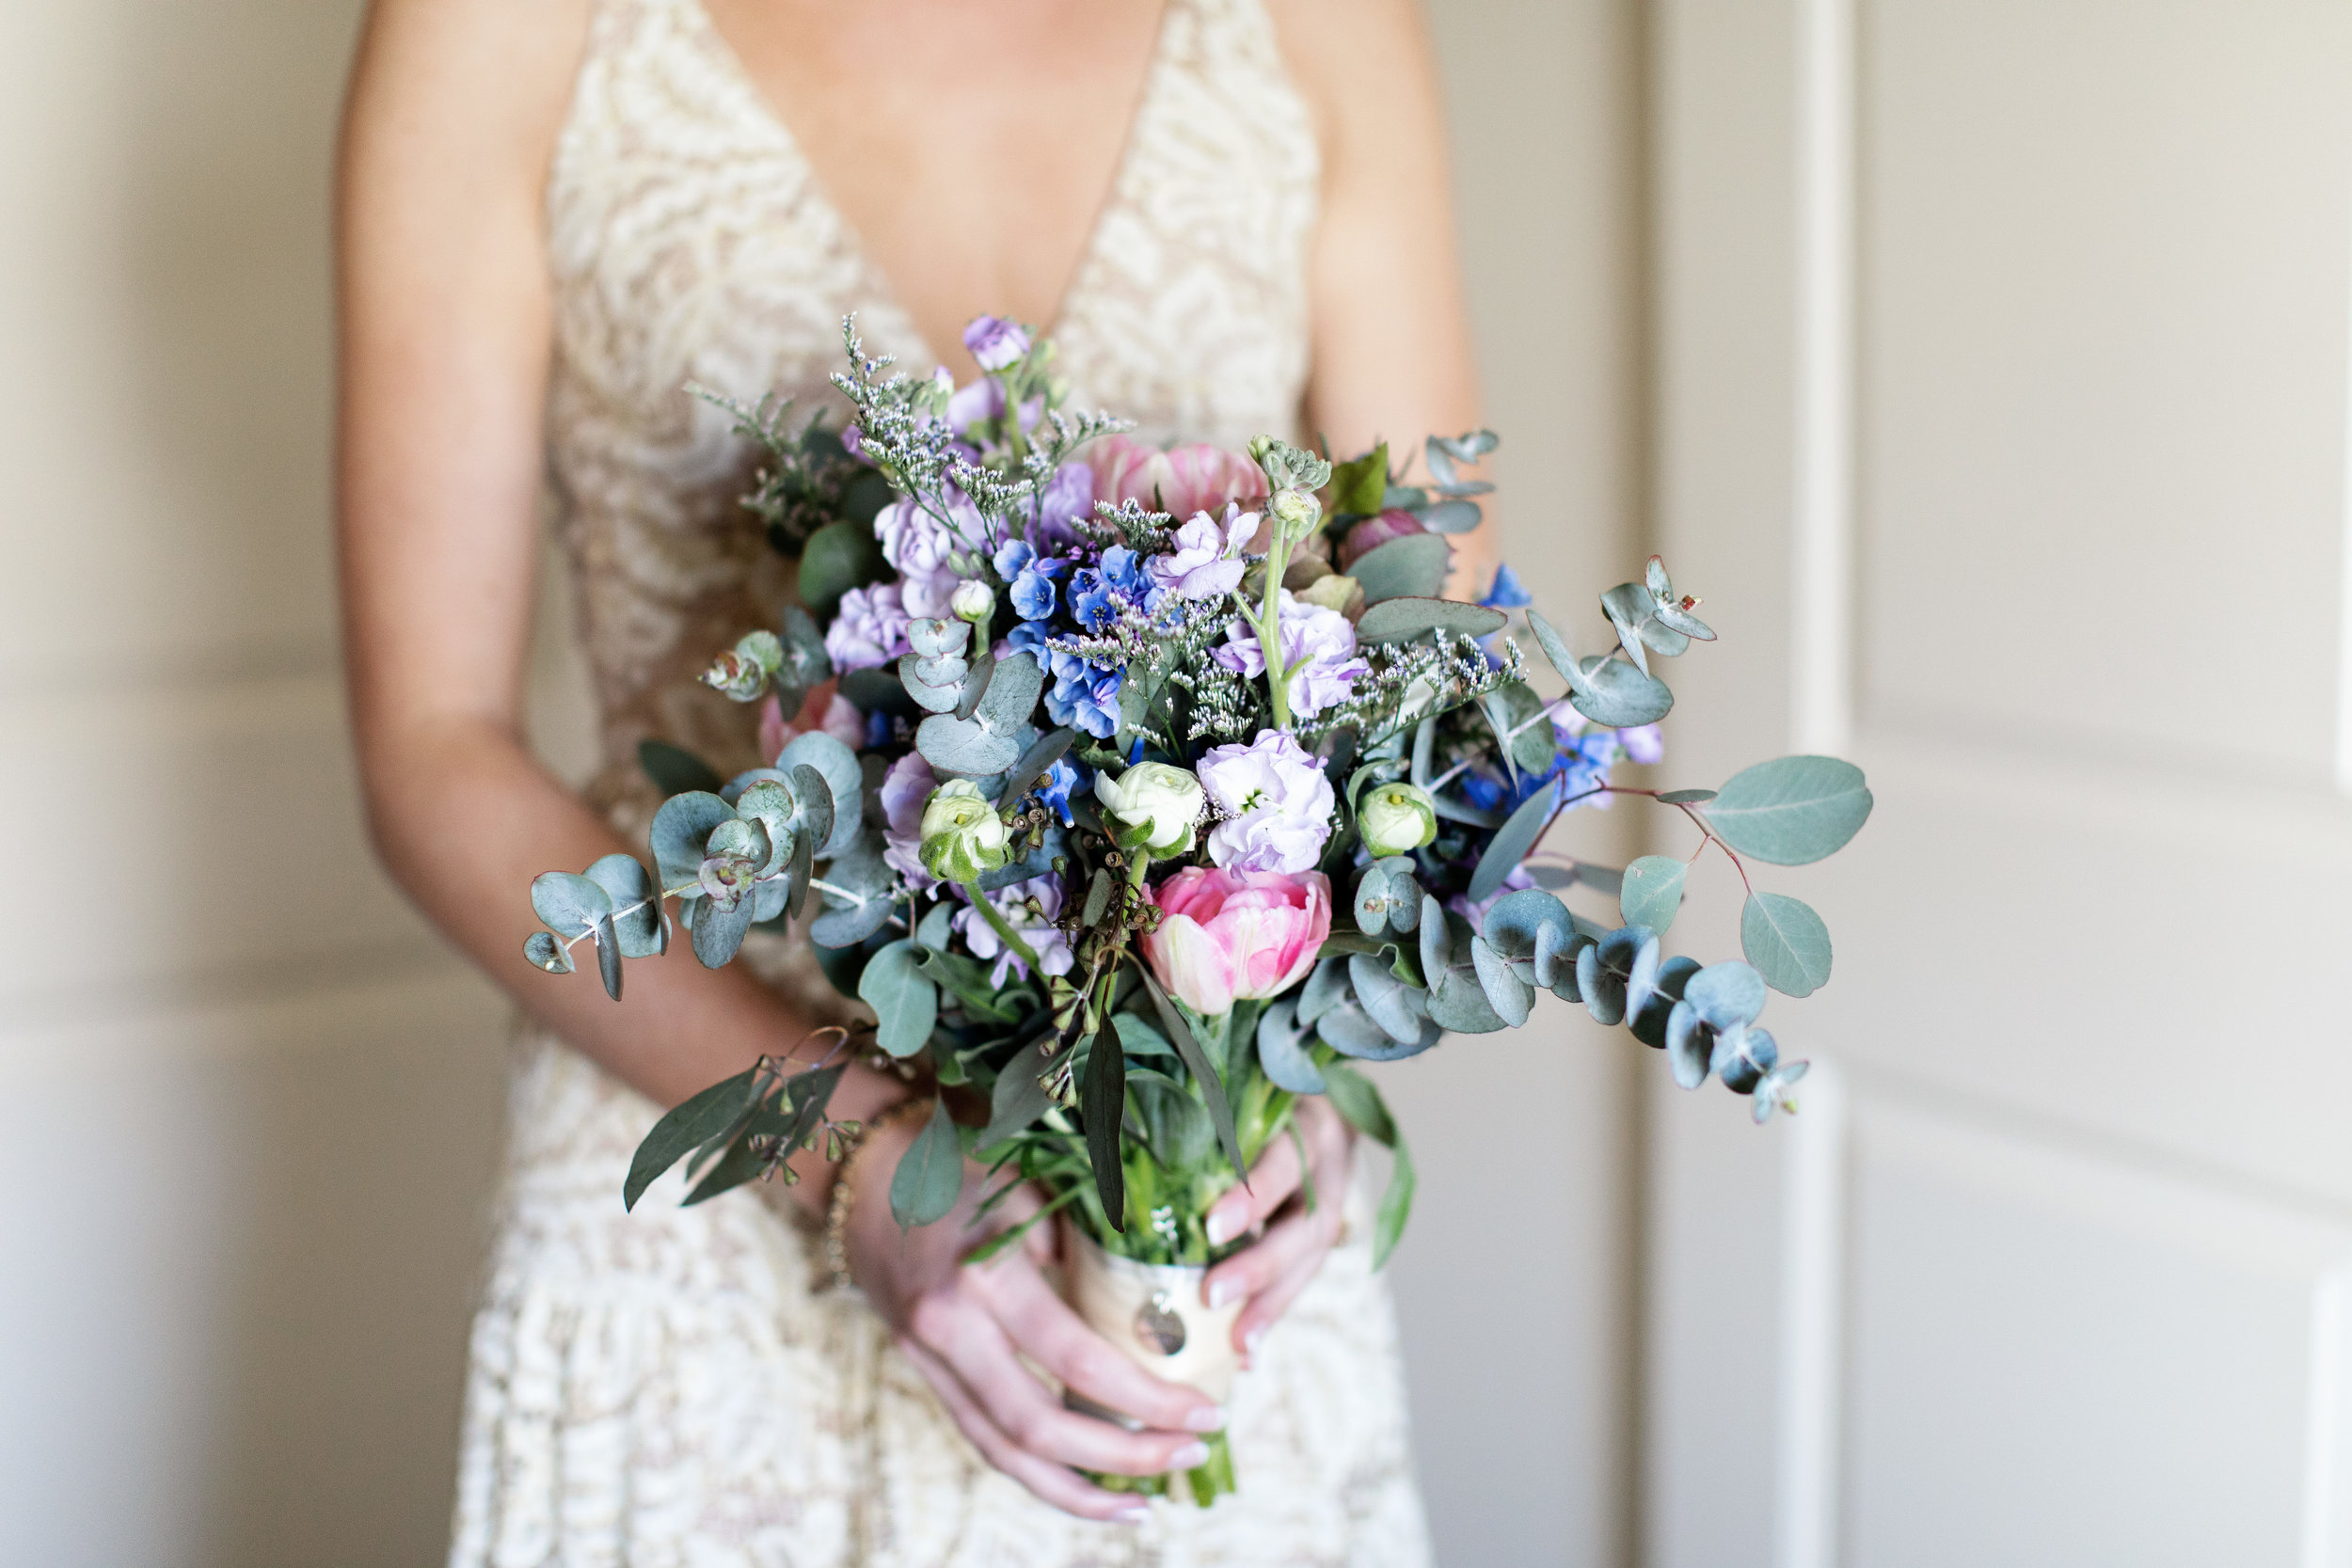 The Bouquet: Blush Angelique Tulips from the field complimented by sweet smelling lavender and white stock and blue delphinium. Eucalyptus is almost a given in bridal bouquets these days and it pulls this one together elegantly with muted gray greens.